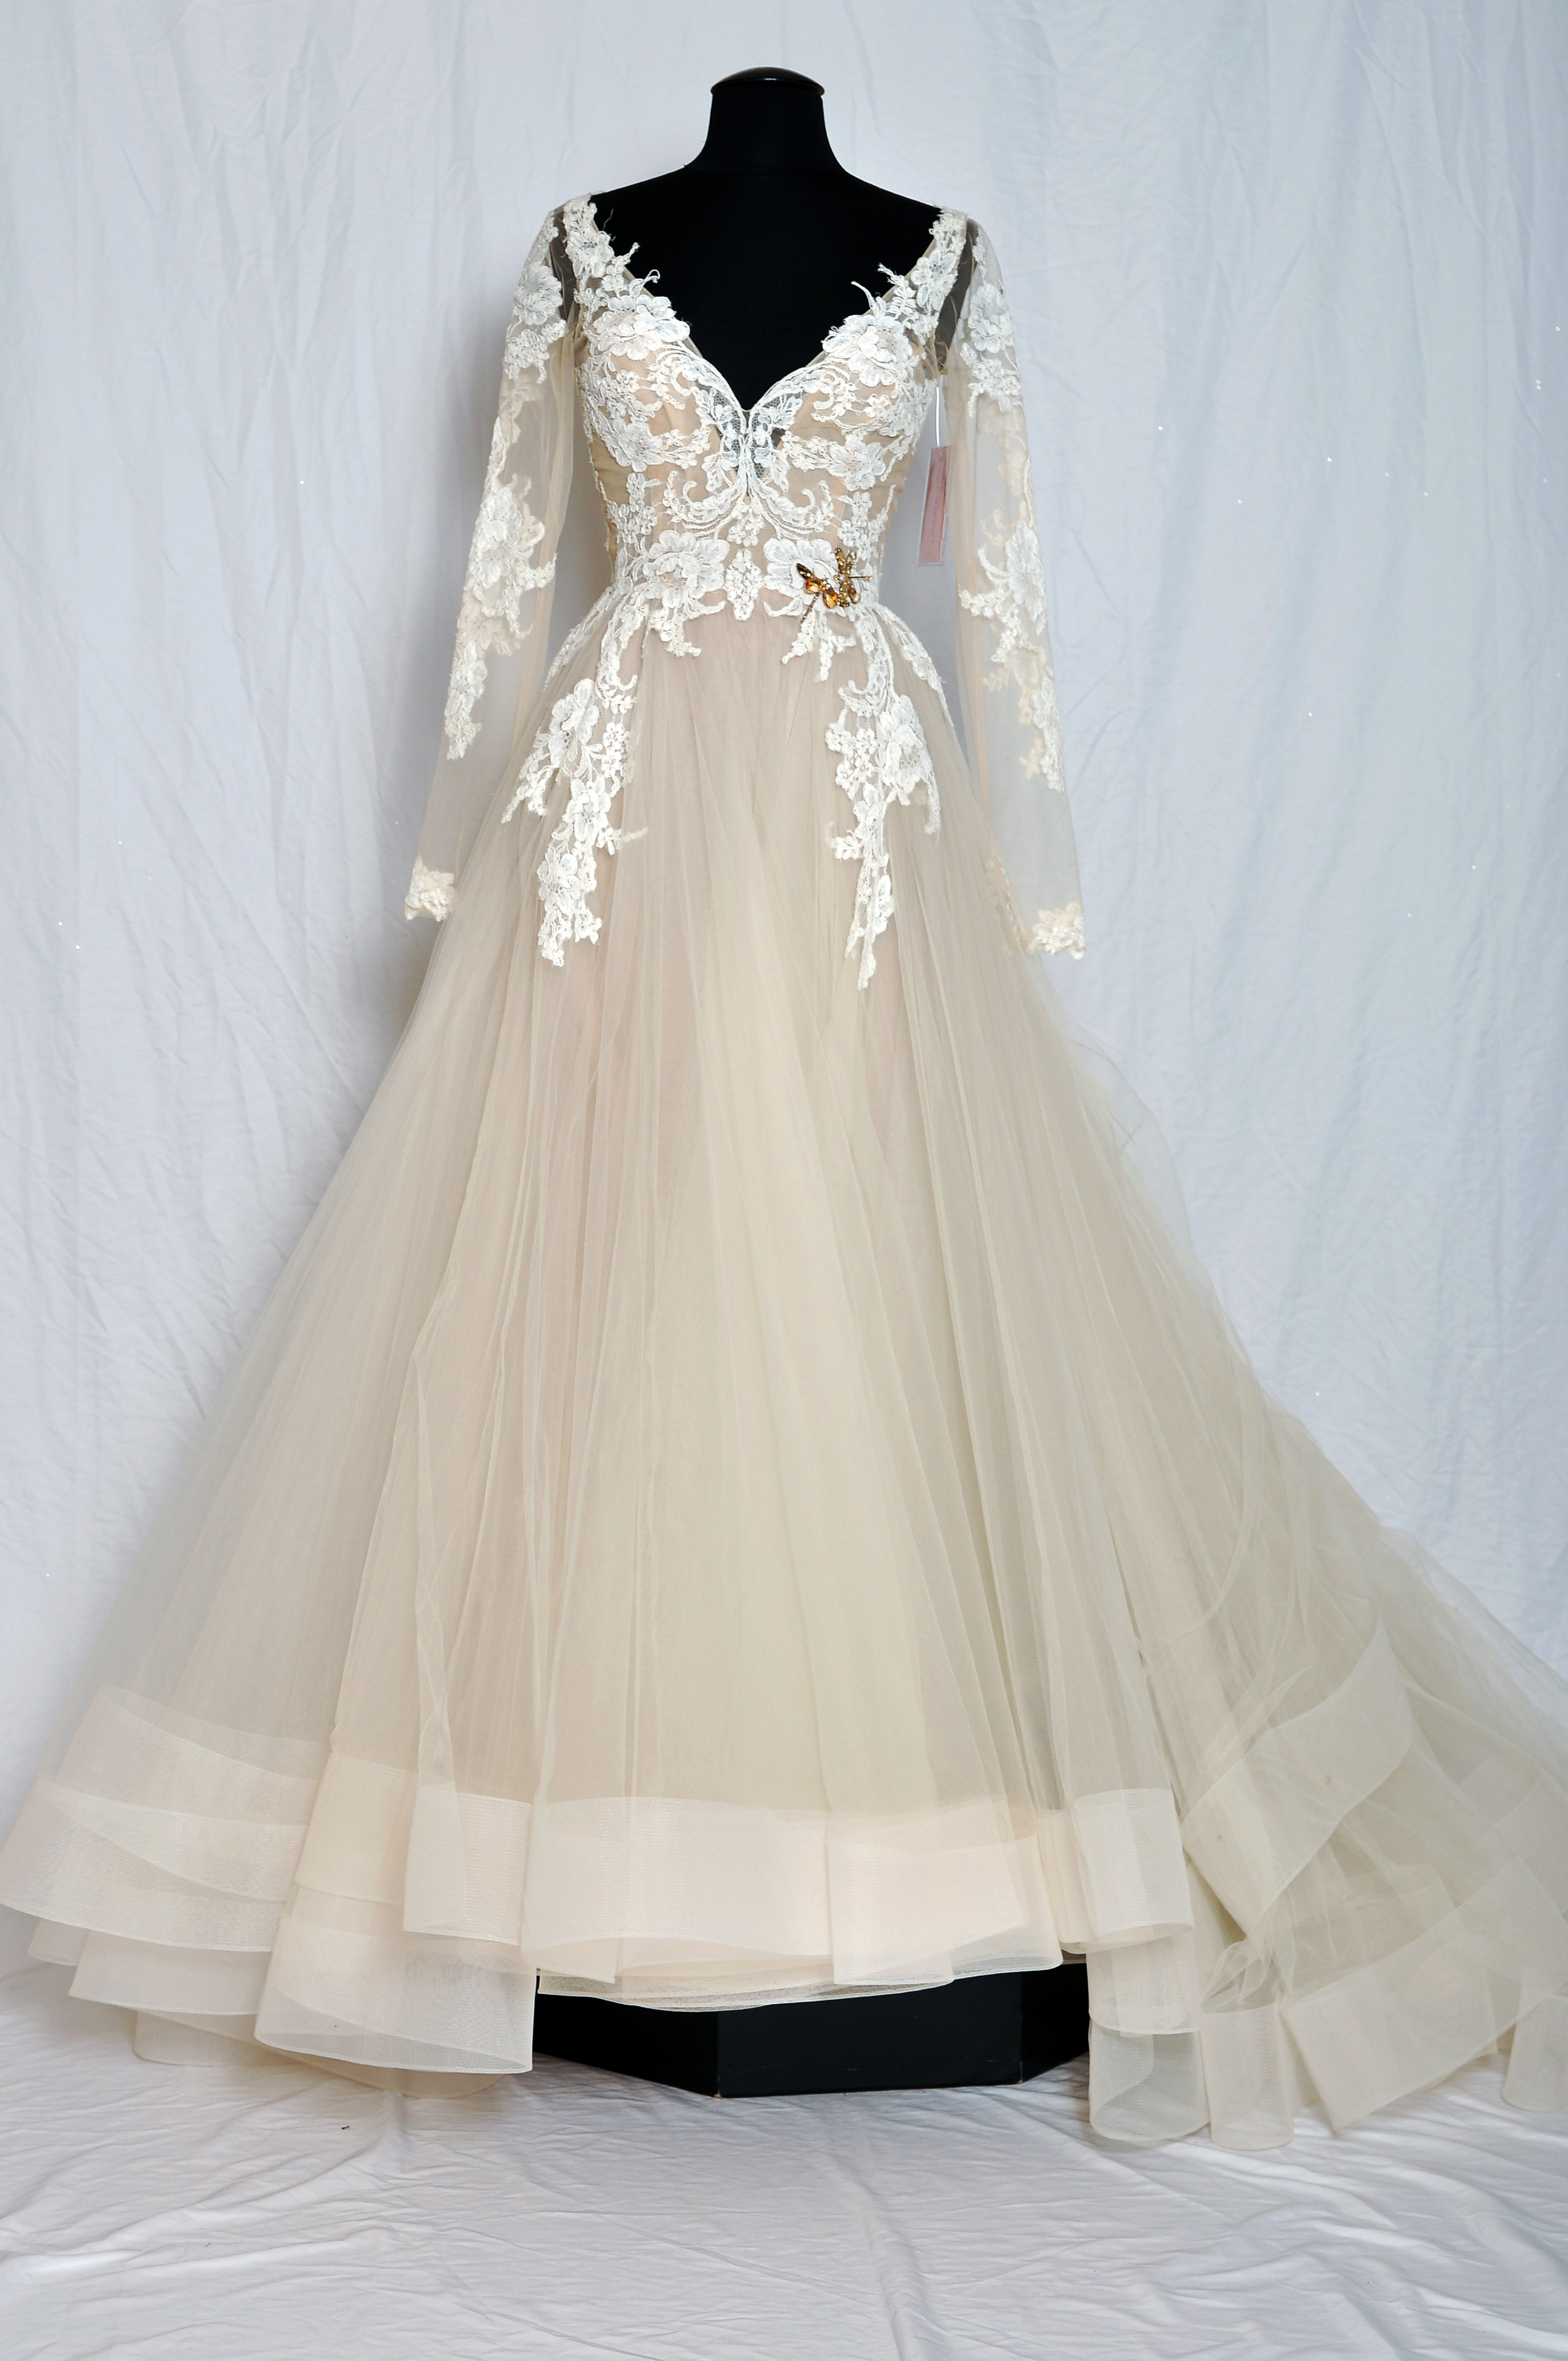 Ivory/champagne alencon lace appliqud tulle bridal ball gown, sculpted V-neckline with curved back, sheer long fitted sleeve, crystal butterfly broach at natural waist, circular skirt with horsehair at hemline, chapel train.